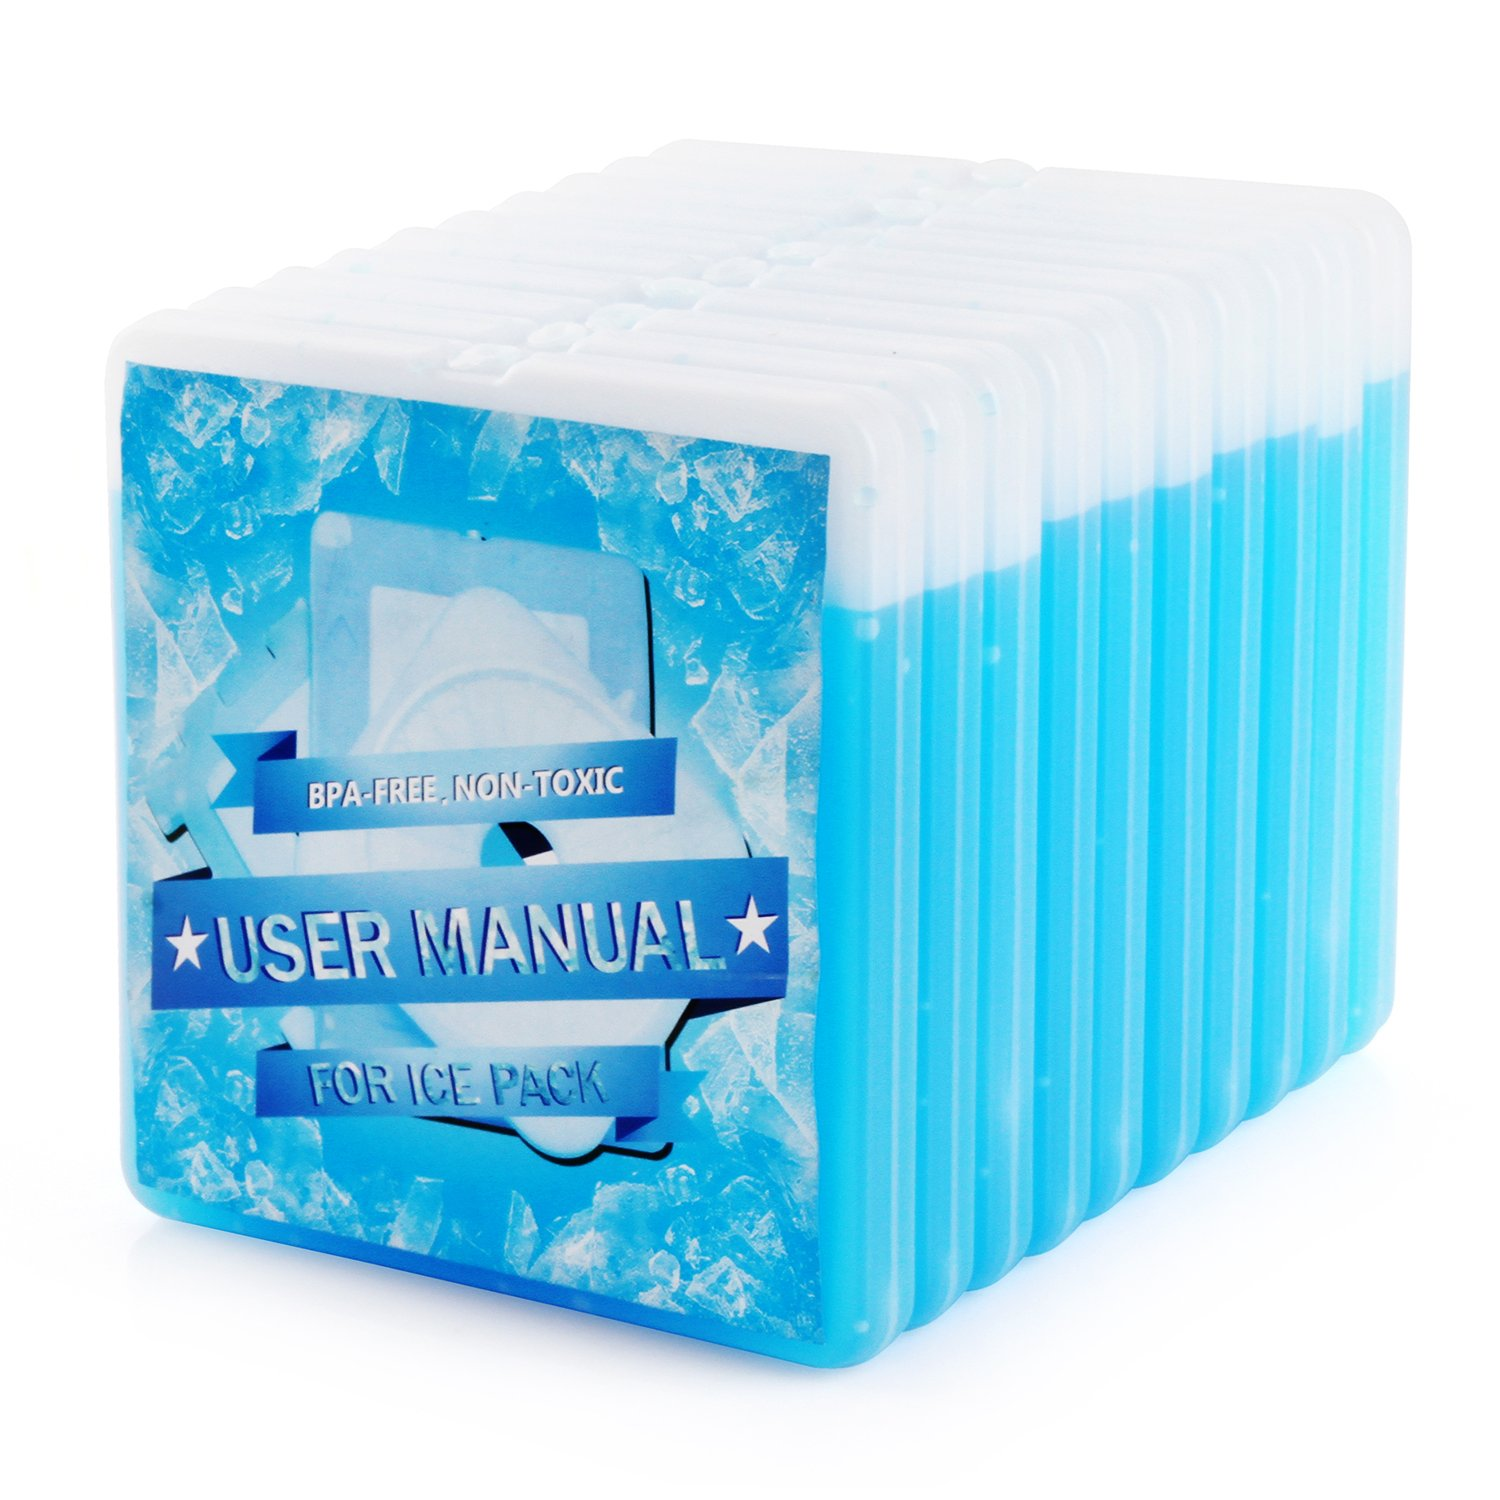 OICEPACK Ice Packs for Lunch Box (set of 10) Blue, Kids & Adults, Reusable Ice Pack for Coolers, Freezer Ice Packs for Coolers, Small Ice Pack Long Lasting, Stay Cold for Beach Camping Cooler Ice Pack